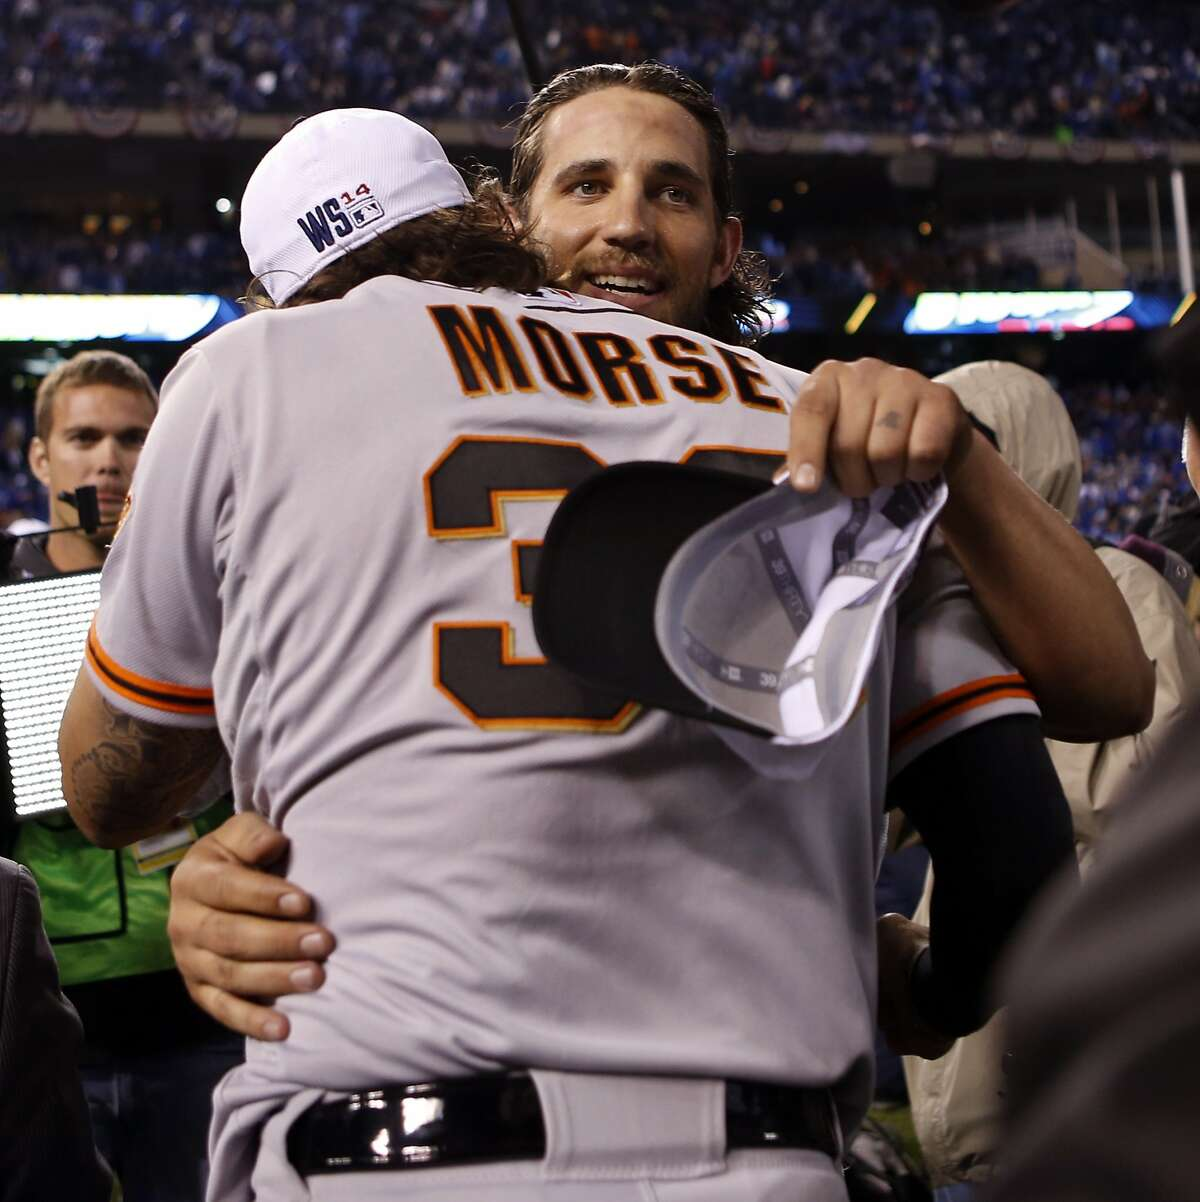 San Francisco Giants' Madison Bumgarner and Michael Morse hug after Game 7 of the World Series at Kauffman Stadium on Wednesday, Oct. 29, 2014 in Kansas City, Mo.